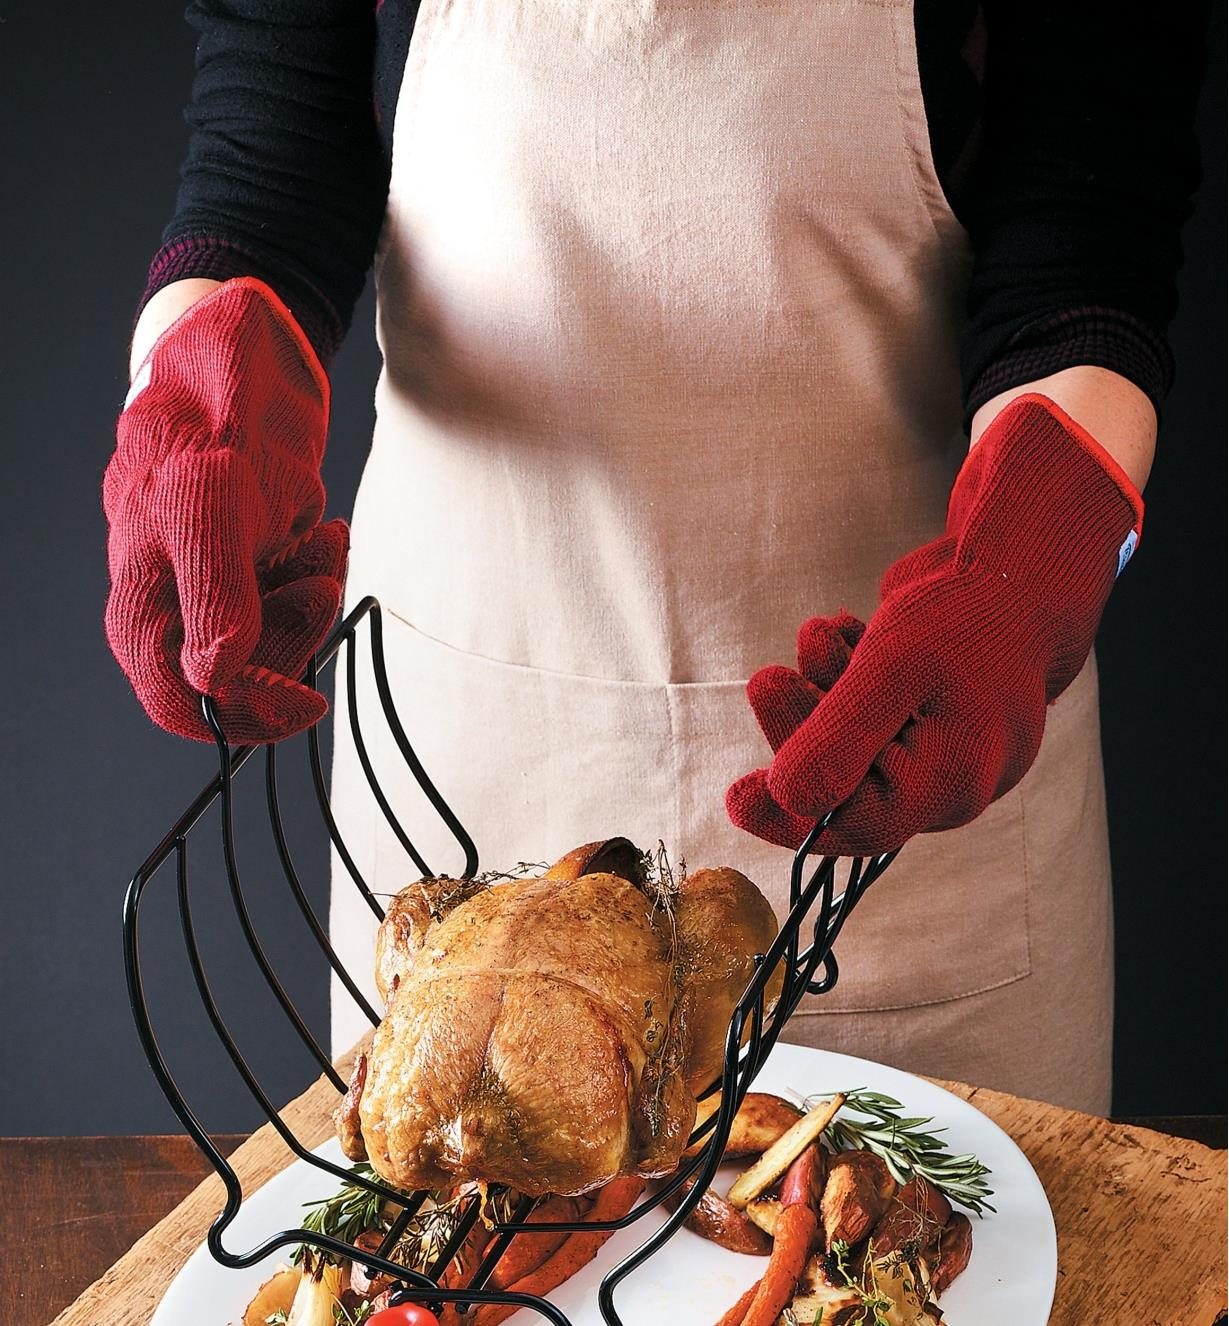 Oven gloves worn while handling a roasting rack